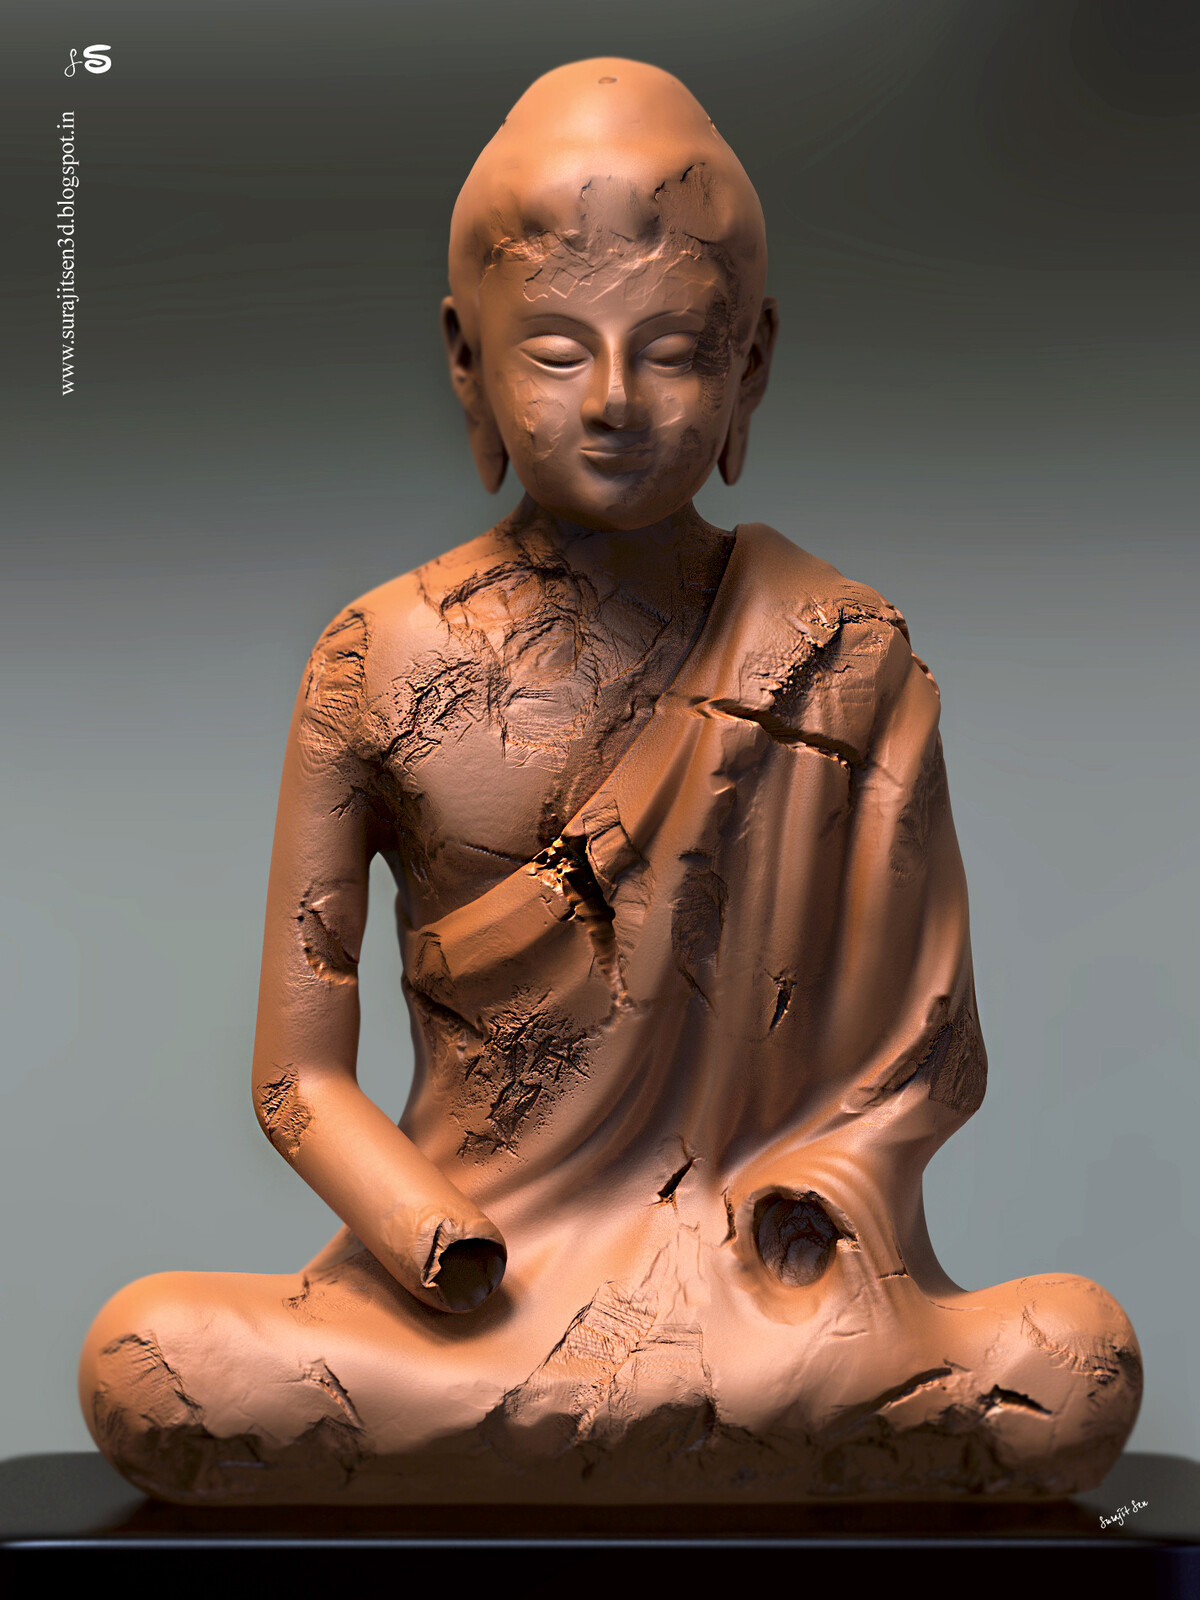 """I like Ancient Art.Wish to share one of my Digital Sculpt Art """"Amitava"""". Inspired by Early 7th century Tang dynasty (China,618–907) Sculpture."""